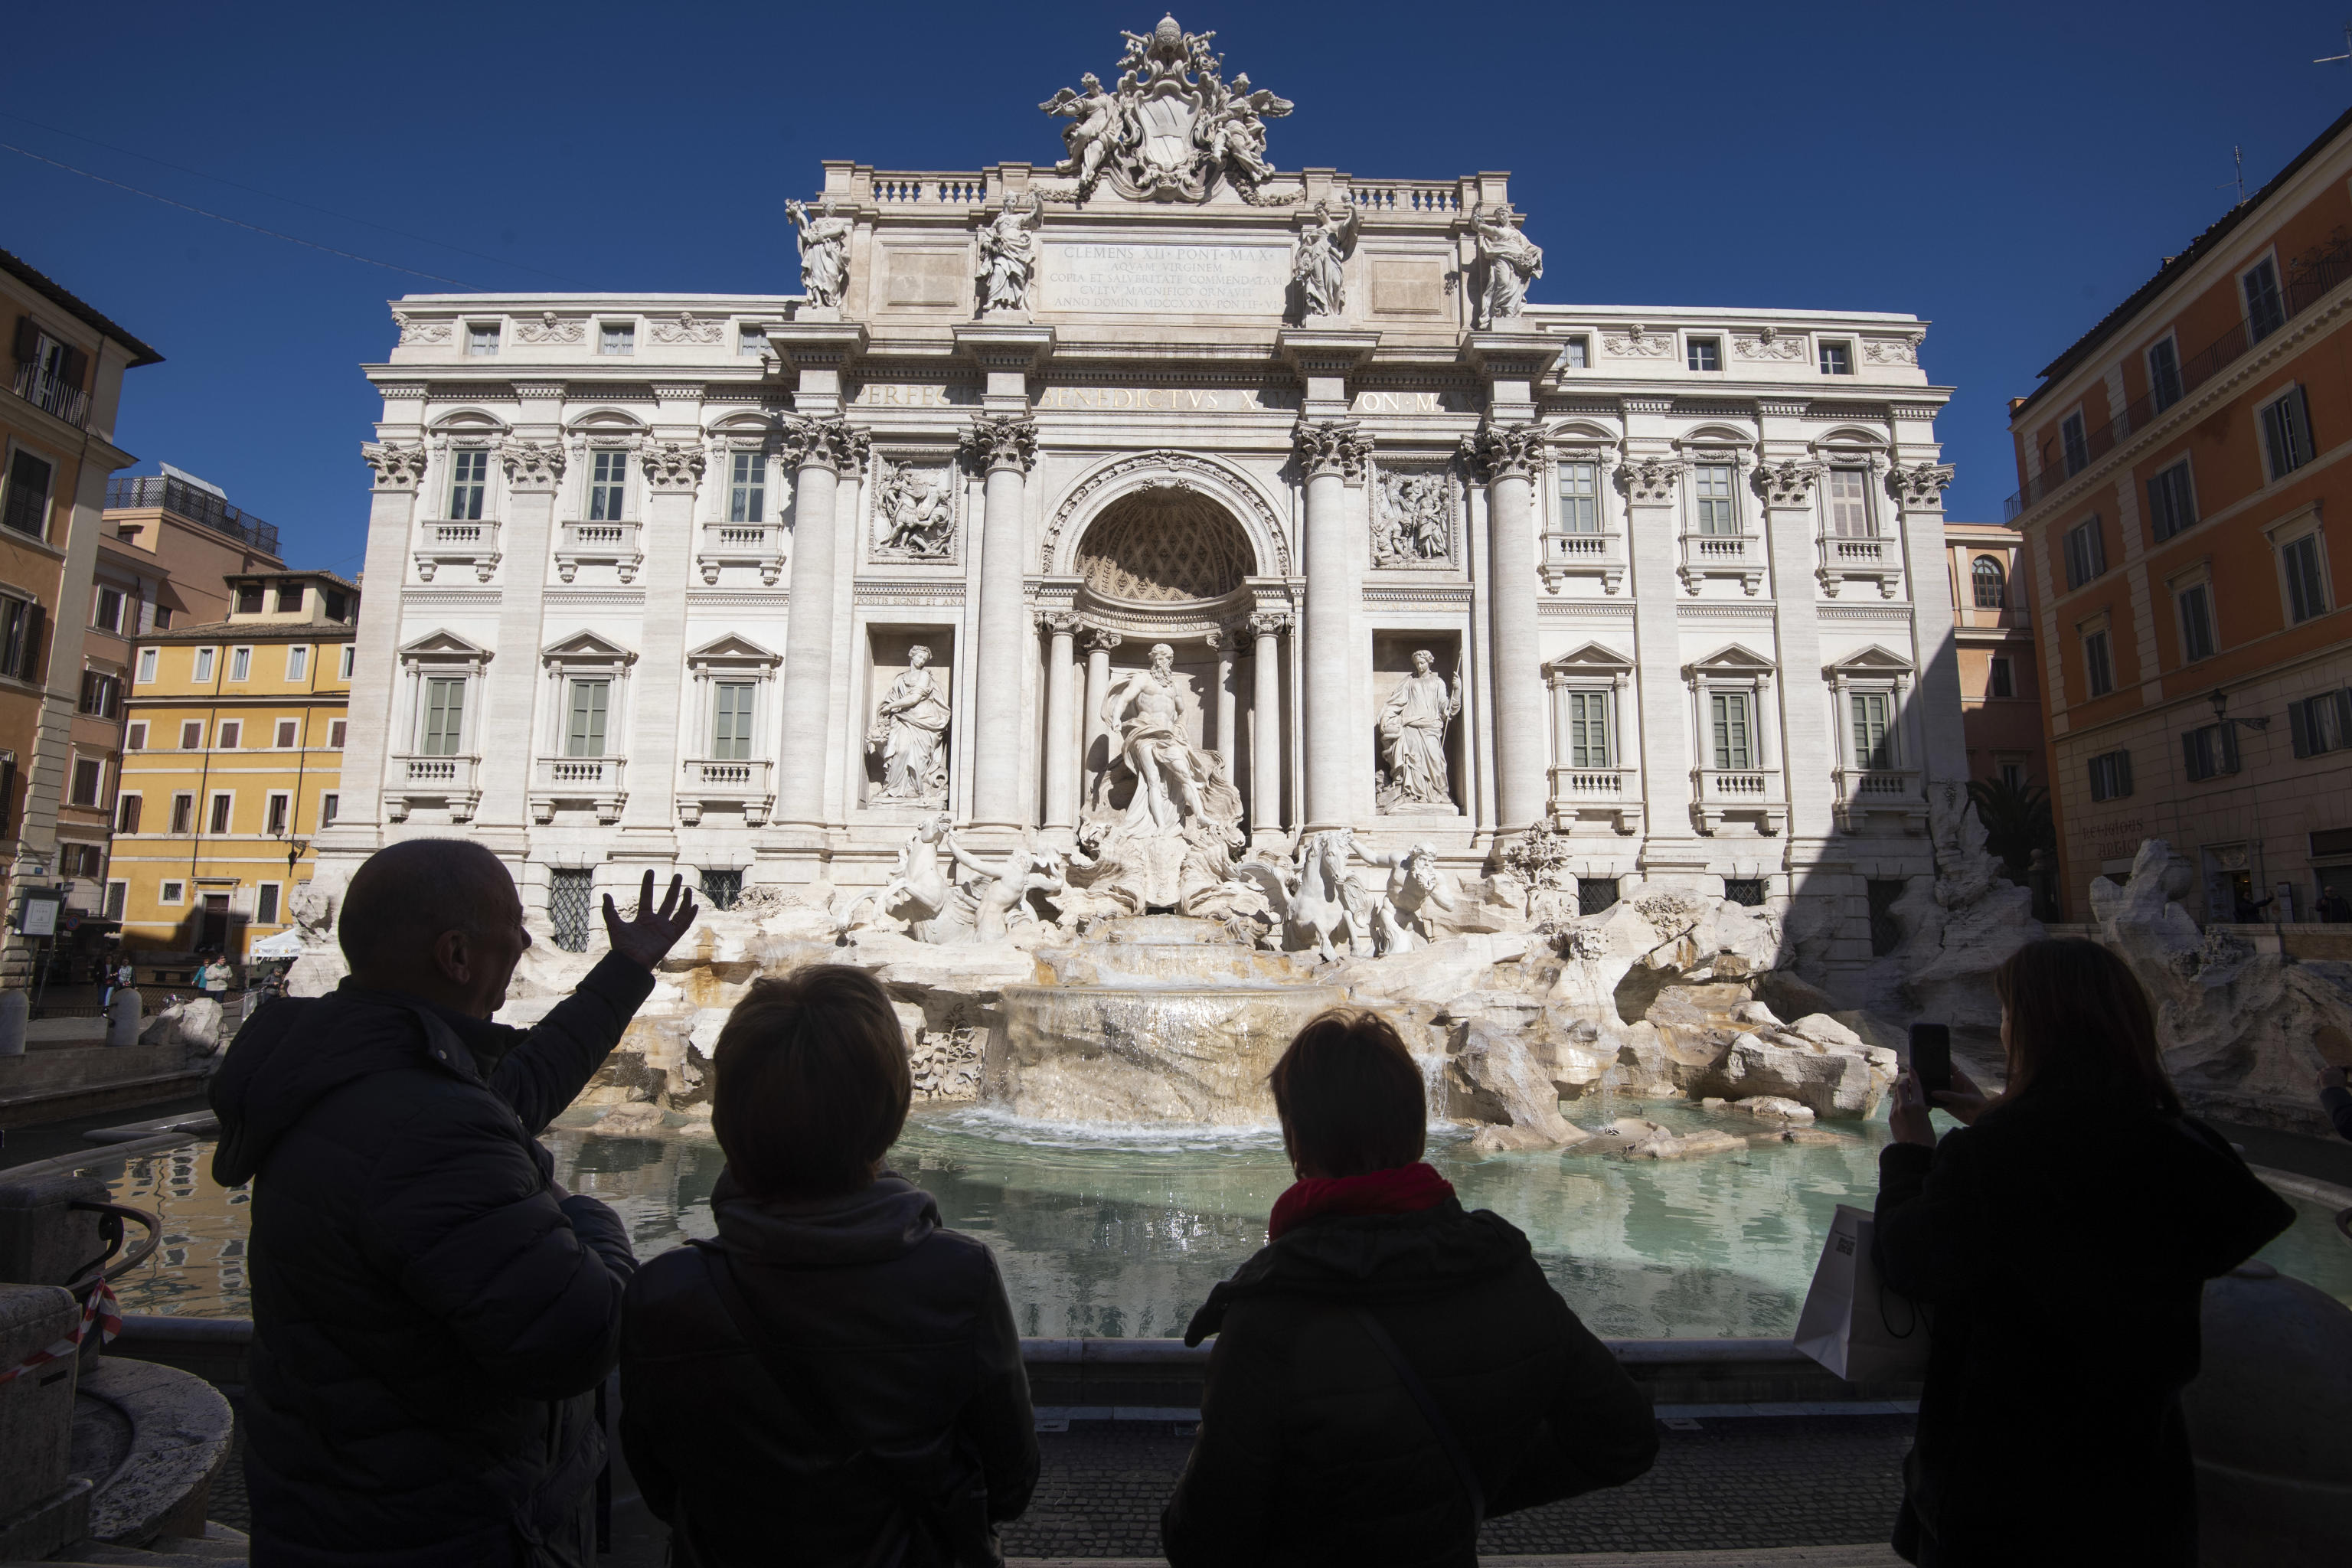 As coronavirus spreads in Italy, tourists reluctantly cancel dream ...